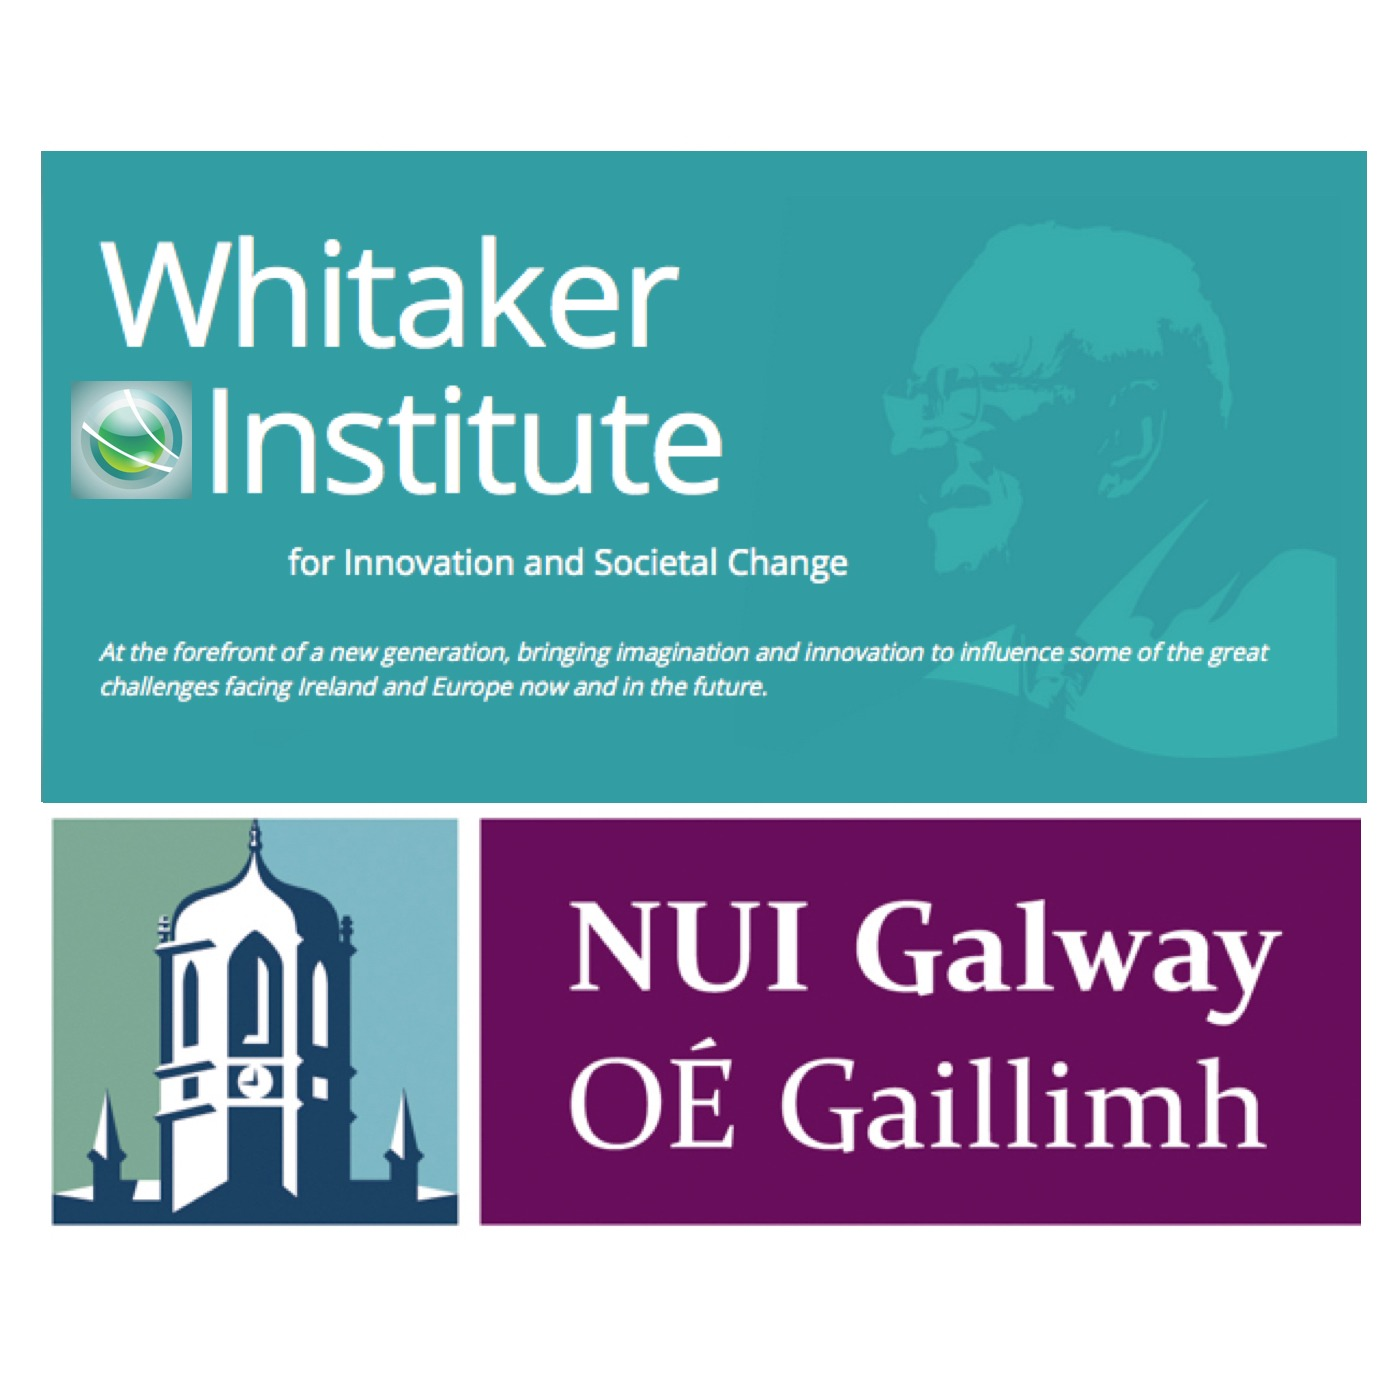 Whitaker Institute (NUI Galway)